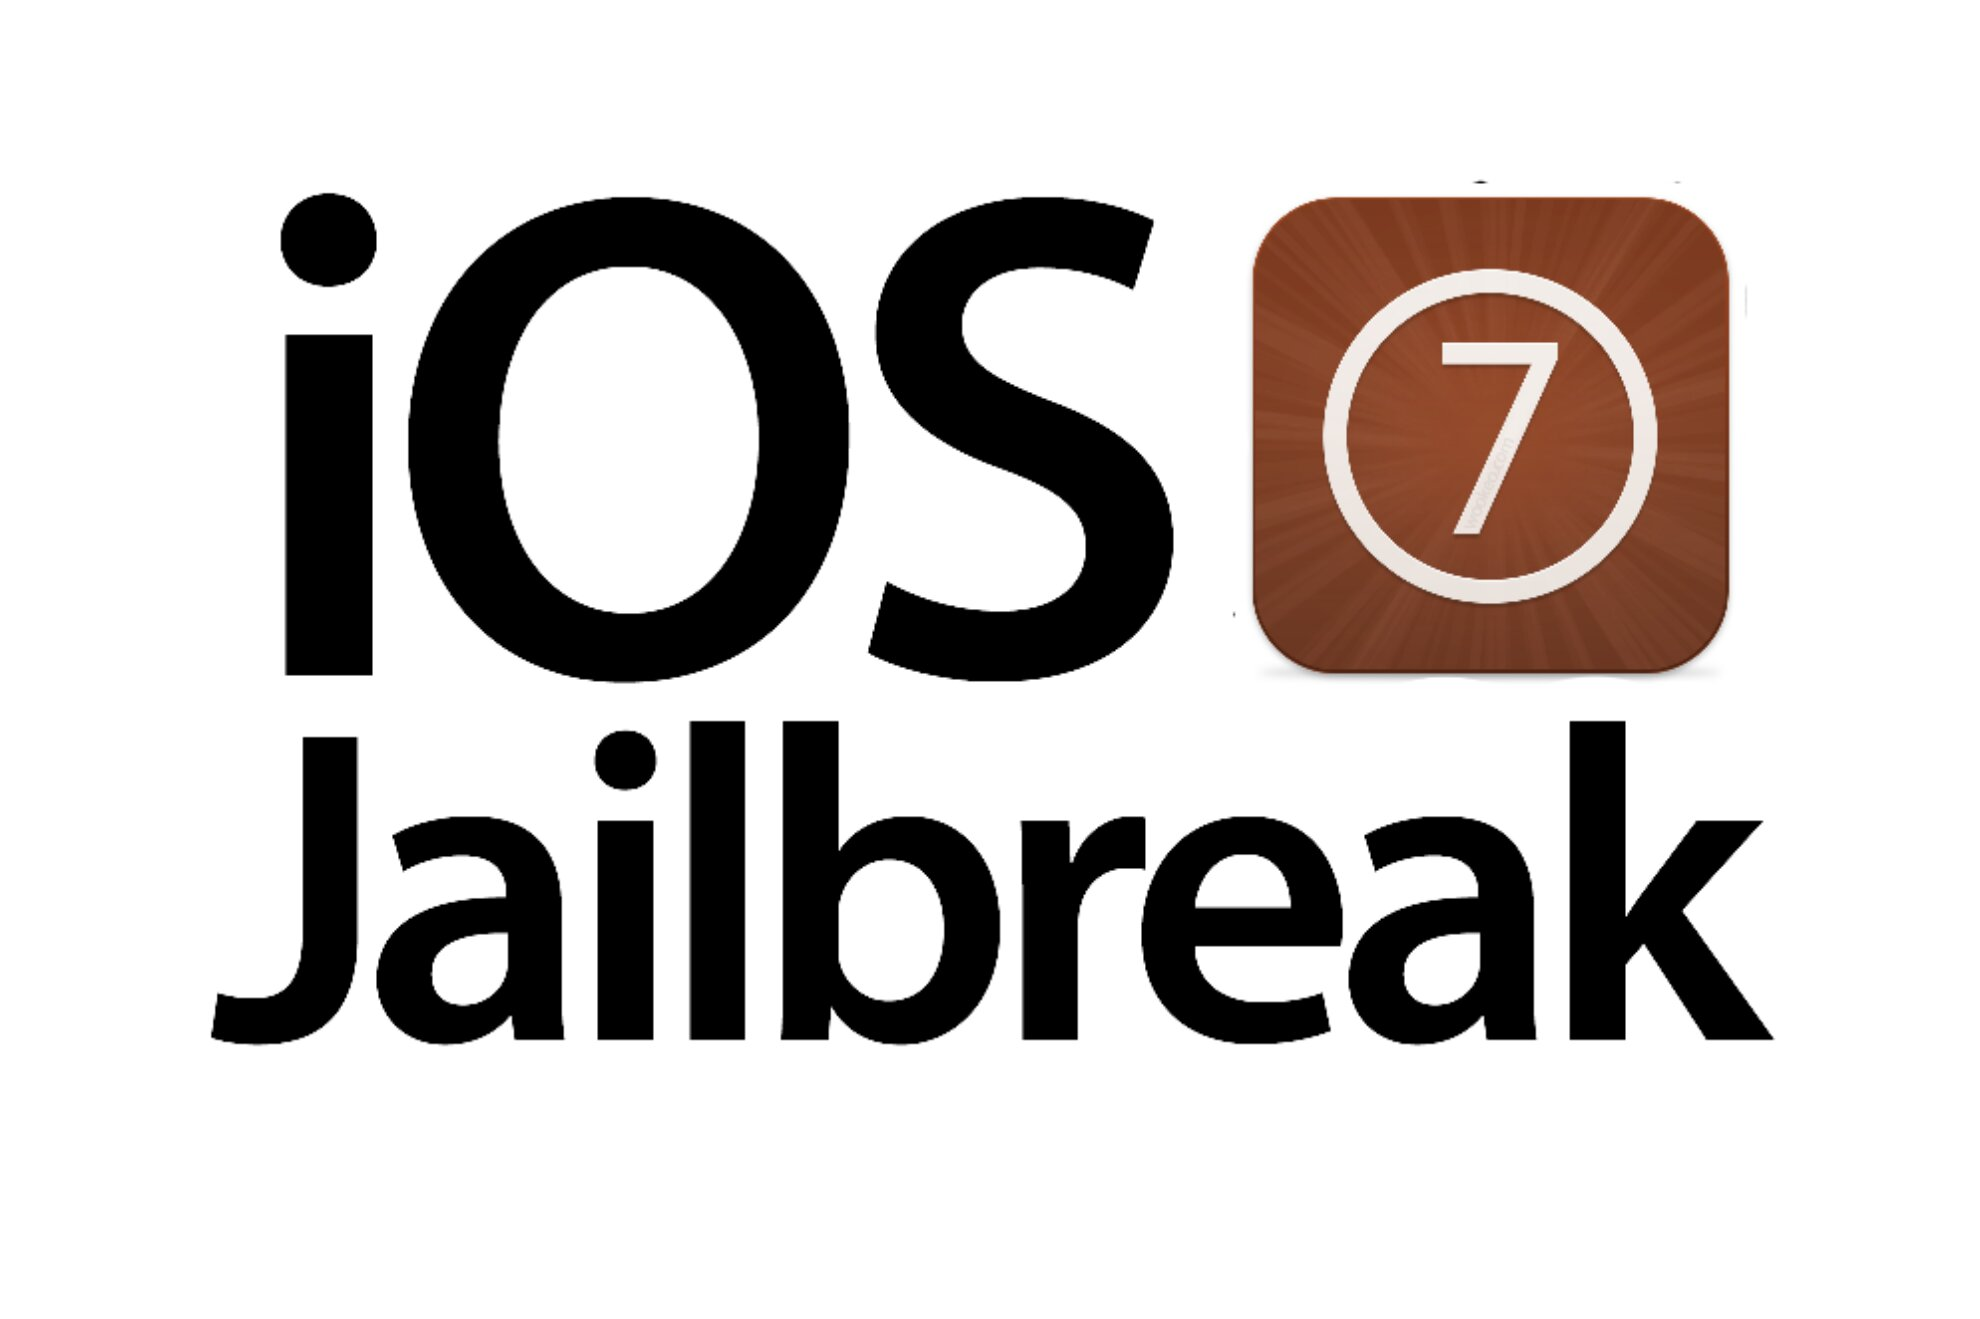 iOS 7 Jailbreak evasi0n tutorial